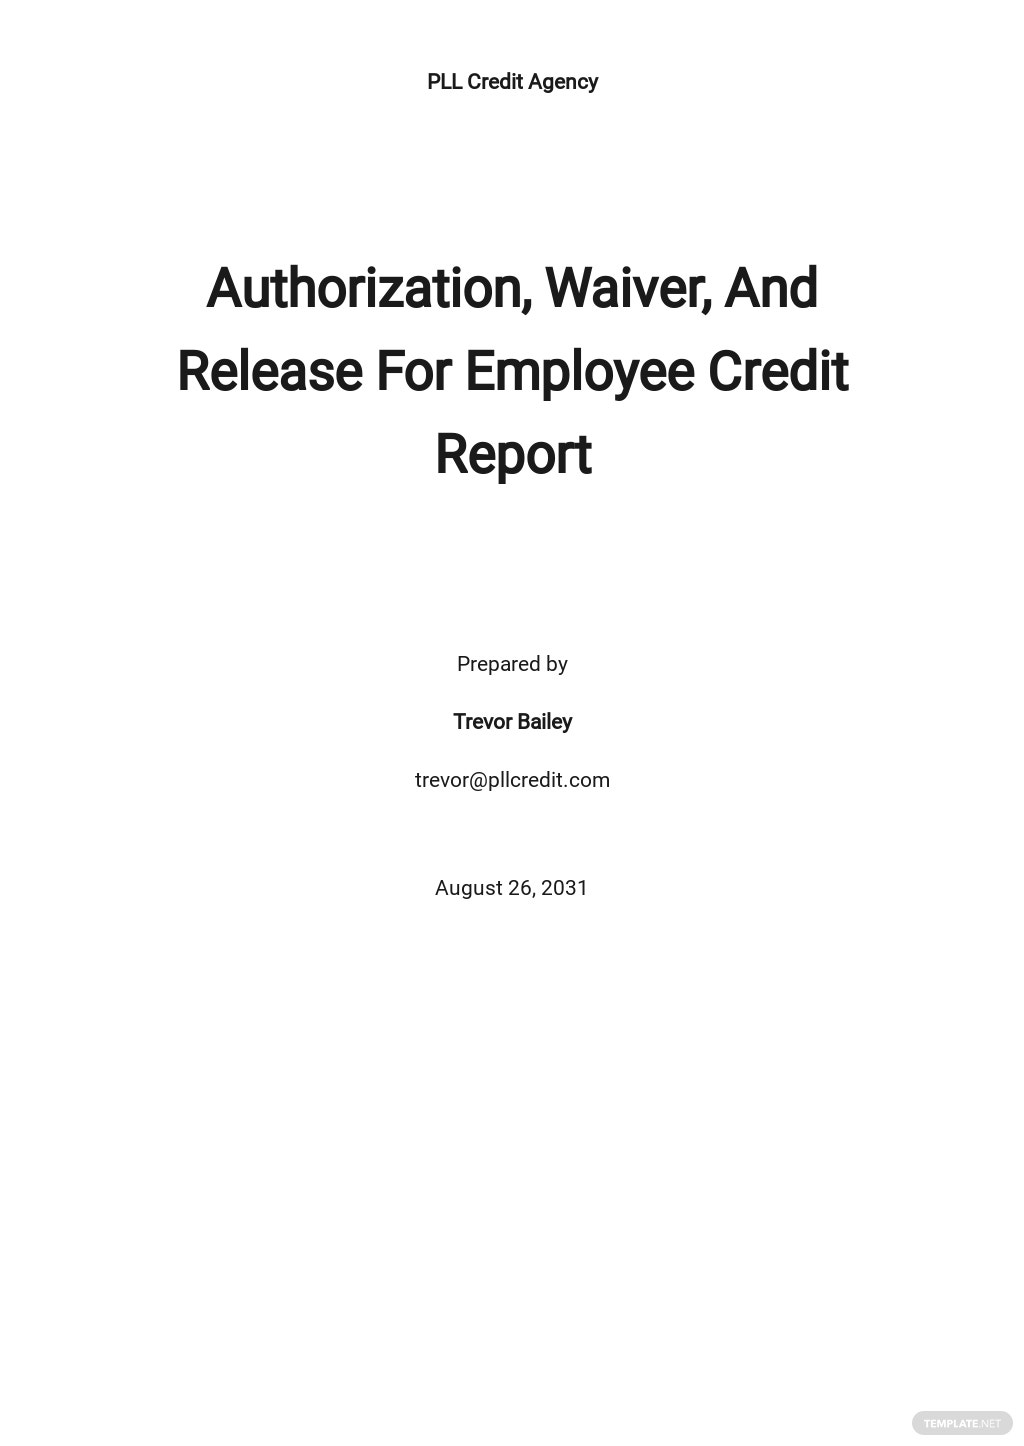 Authorization, Waiver, And Release For Employee Credit Report Template [Free PDF] - Google Docs, Word